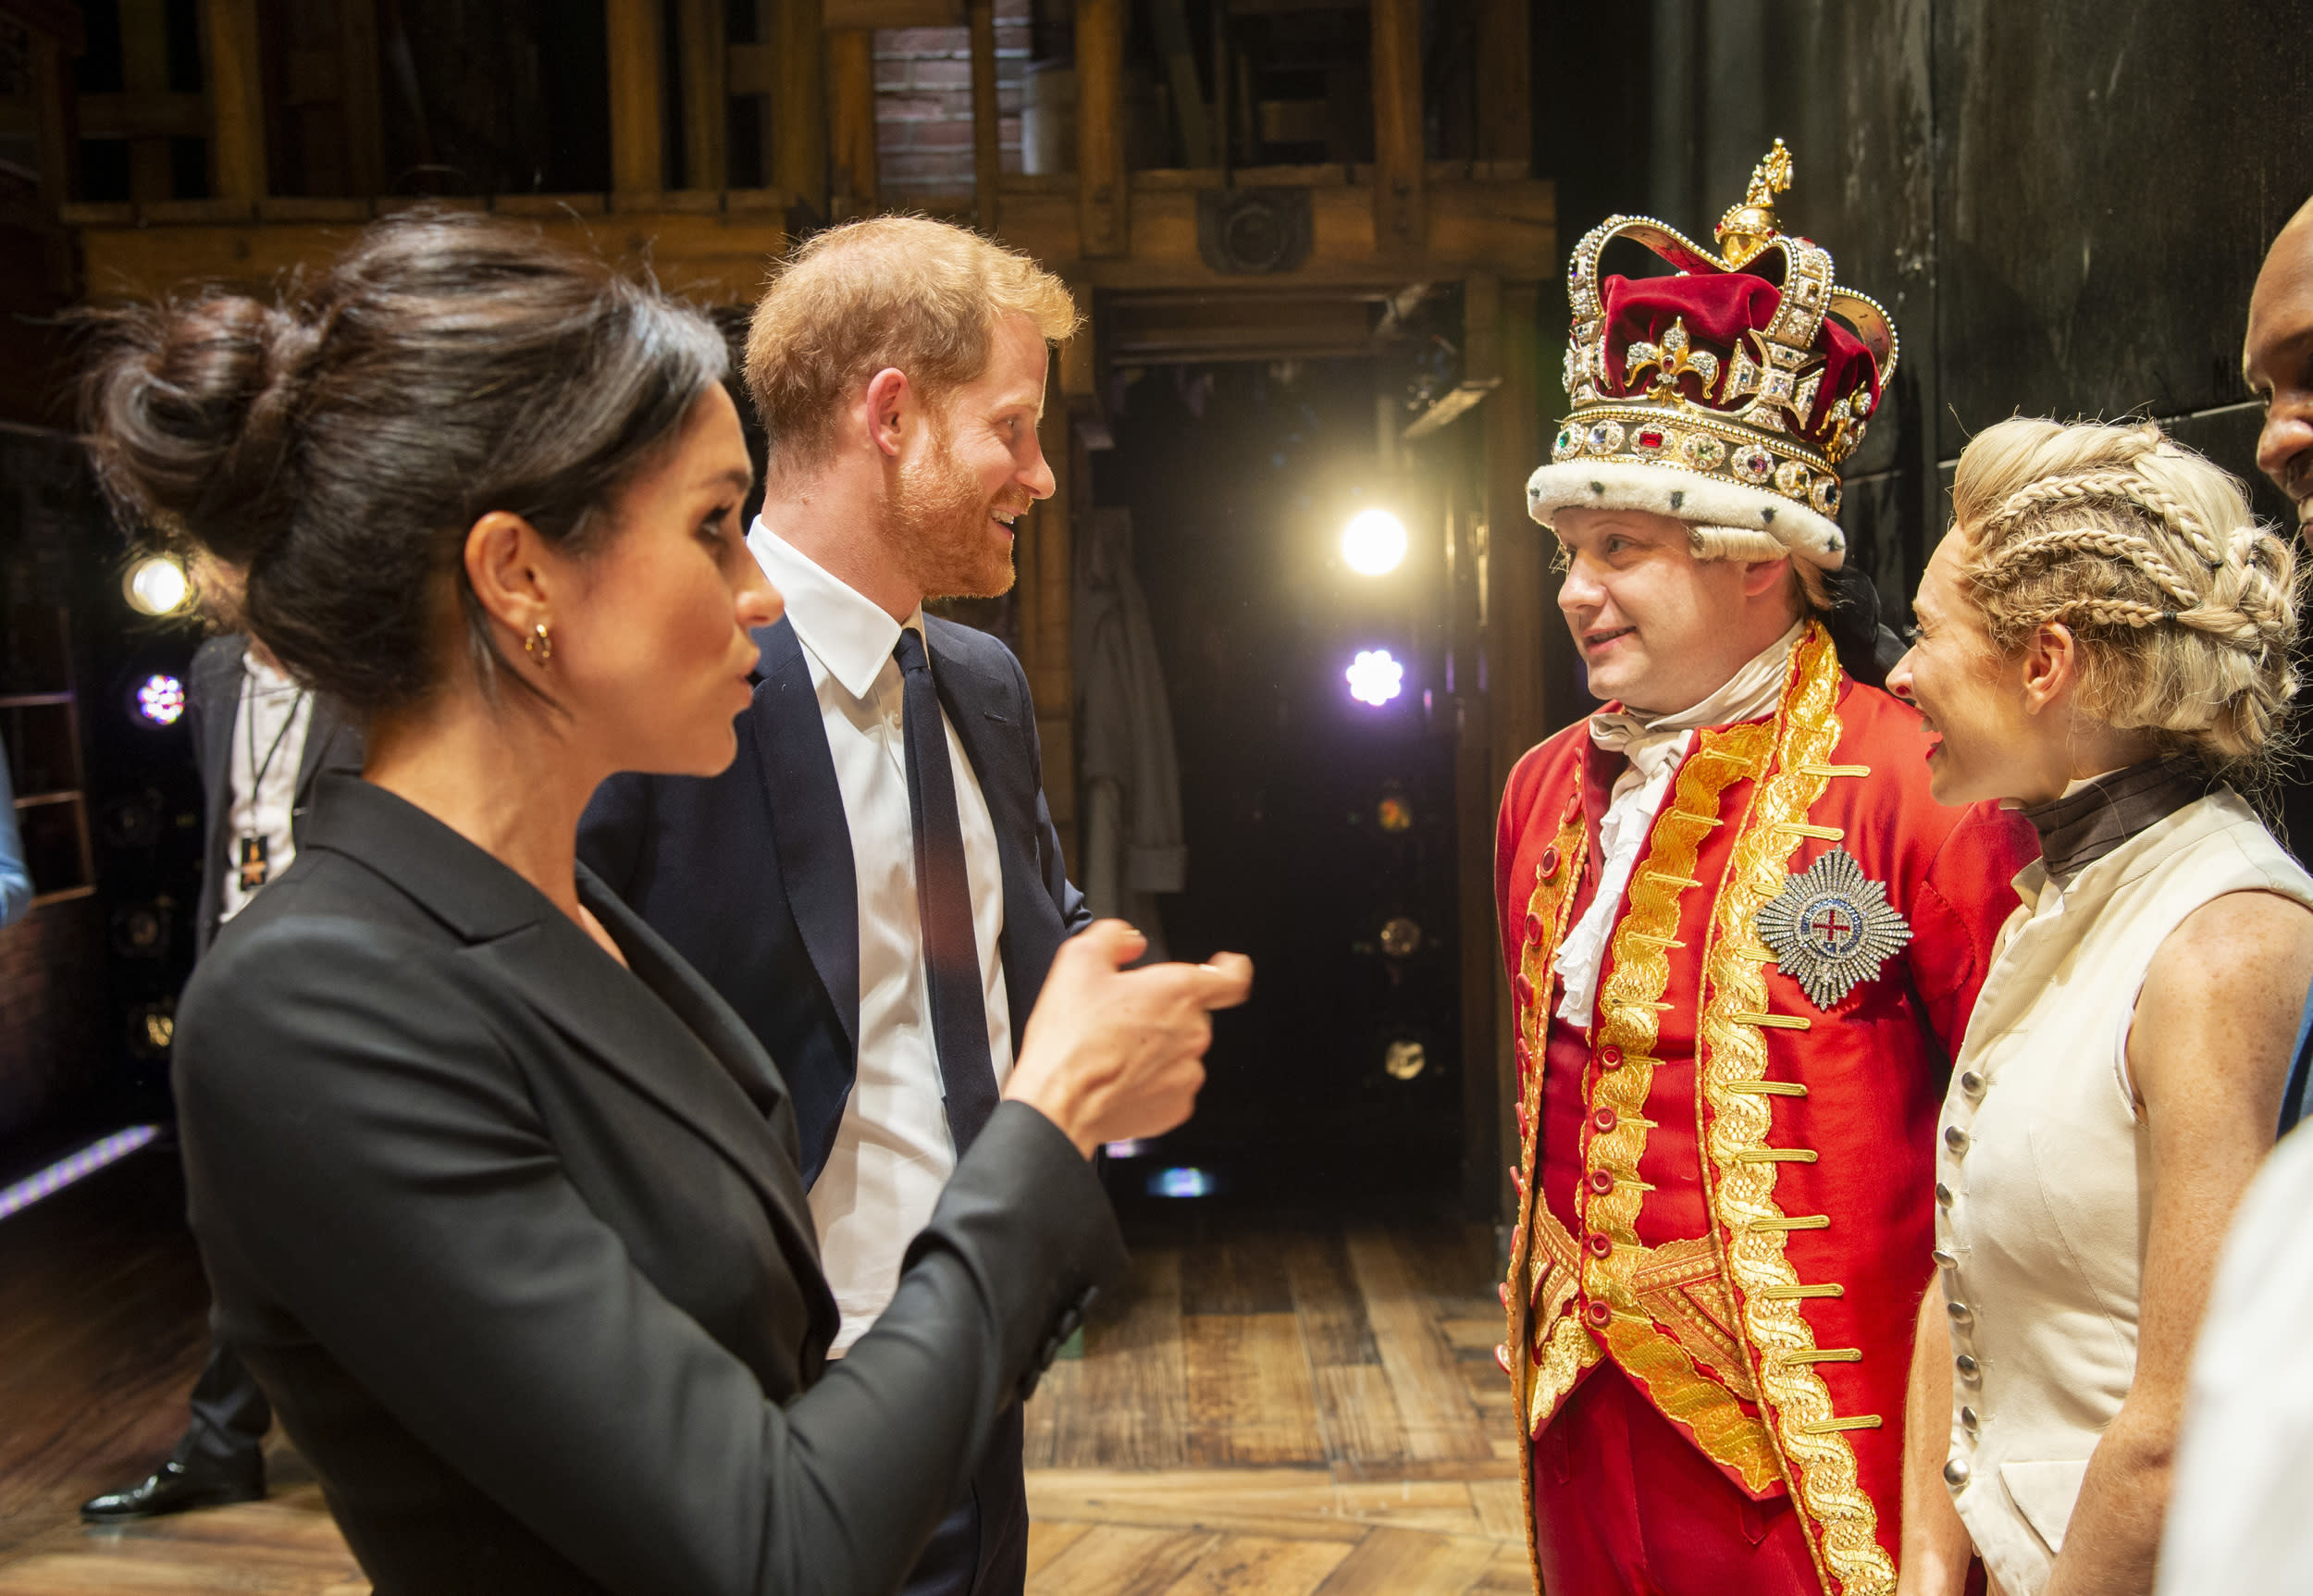 The Duke and Duchess of Sussex meeting 'King George' and the cast at the Victoria Palace Theatre in London after attending a gala performance of the musical Hamilton, in support of Sentebale.